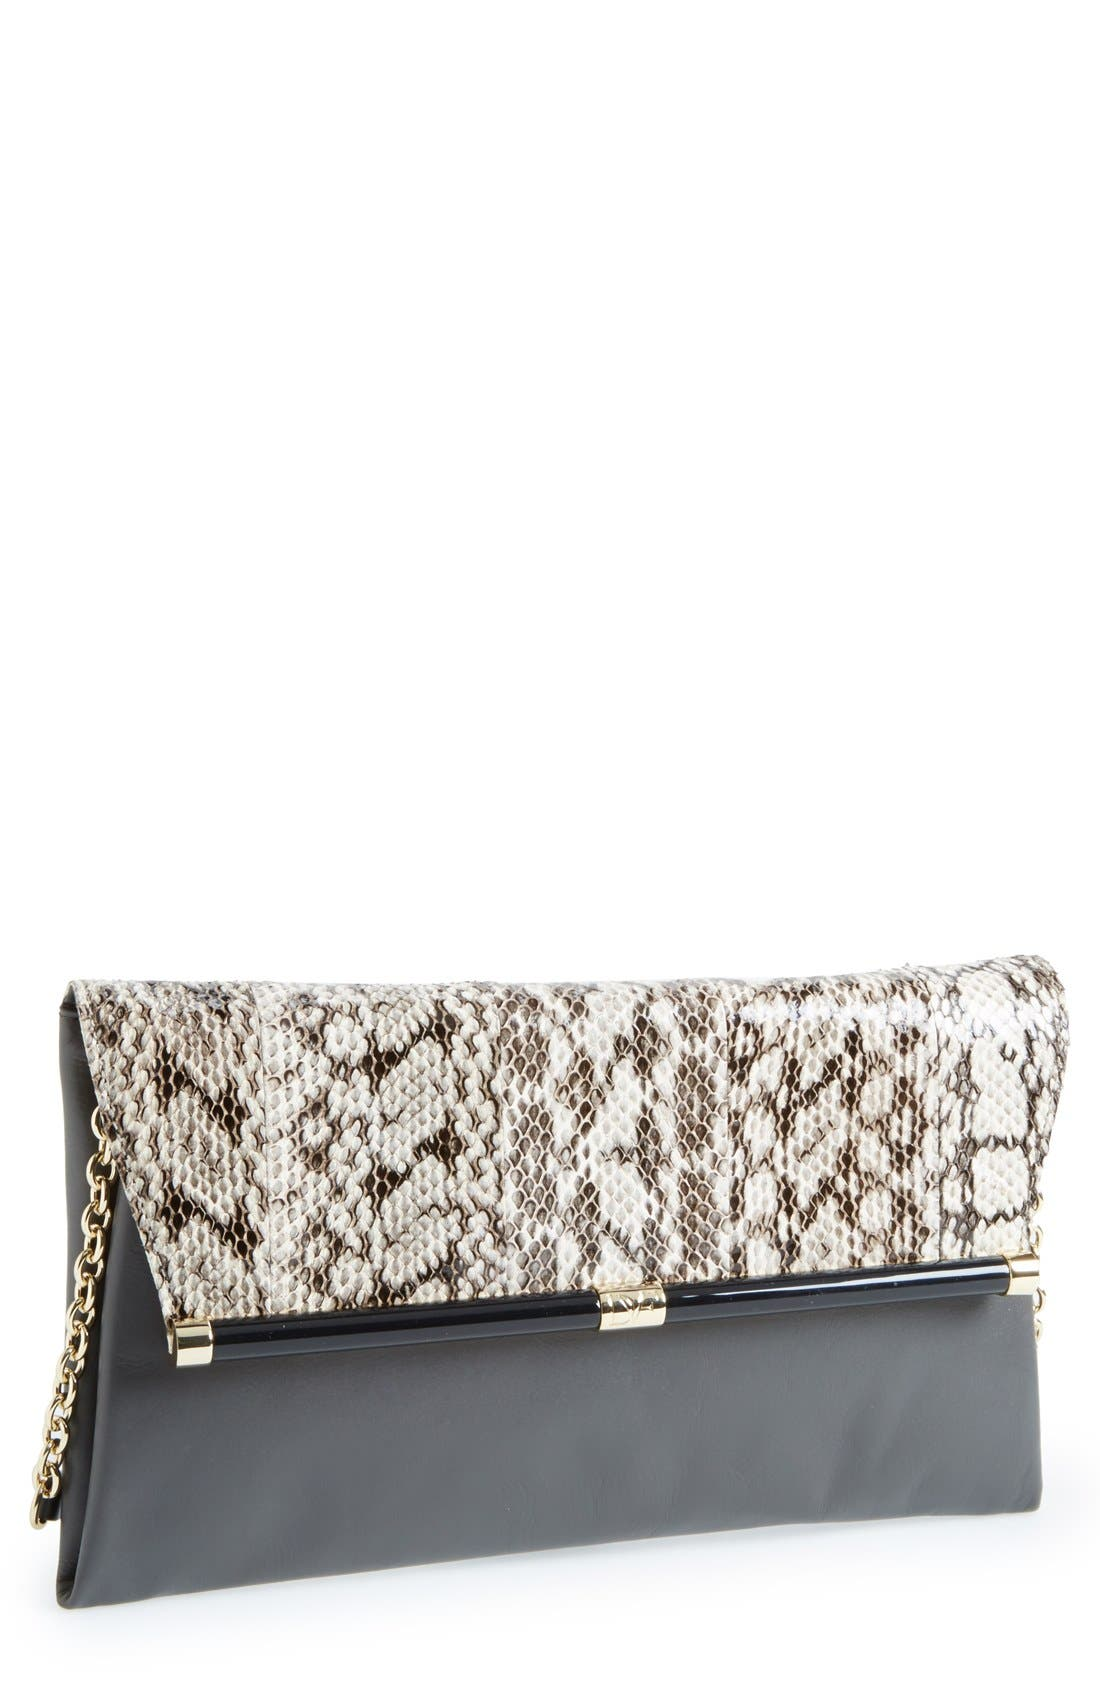 Alternate Image 1 Selected - Diane von Furstenberg 'Large 440' Snakeskin Envelope Clutch